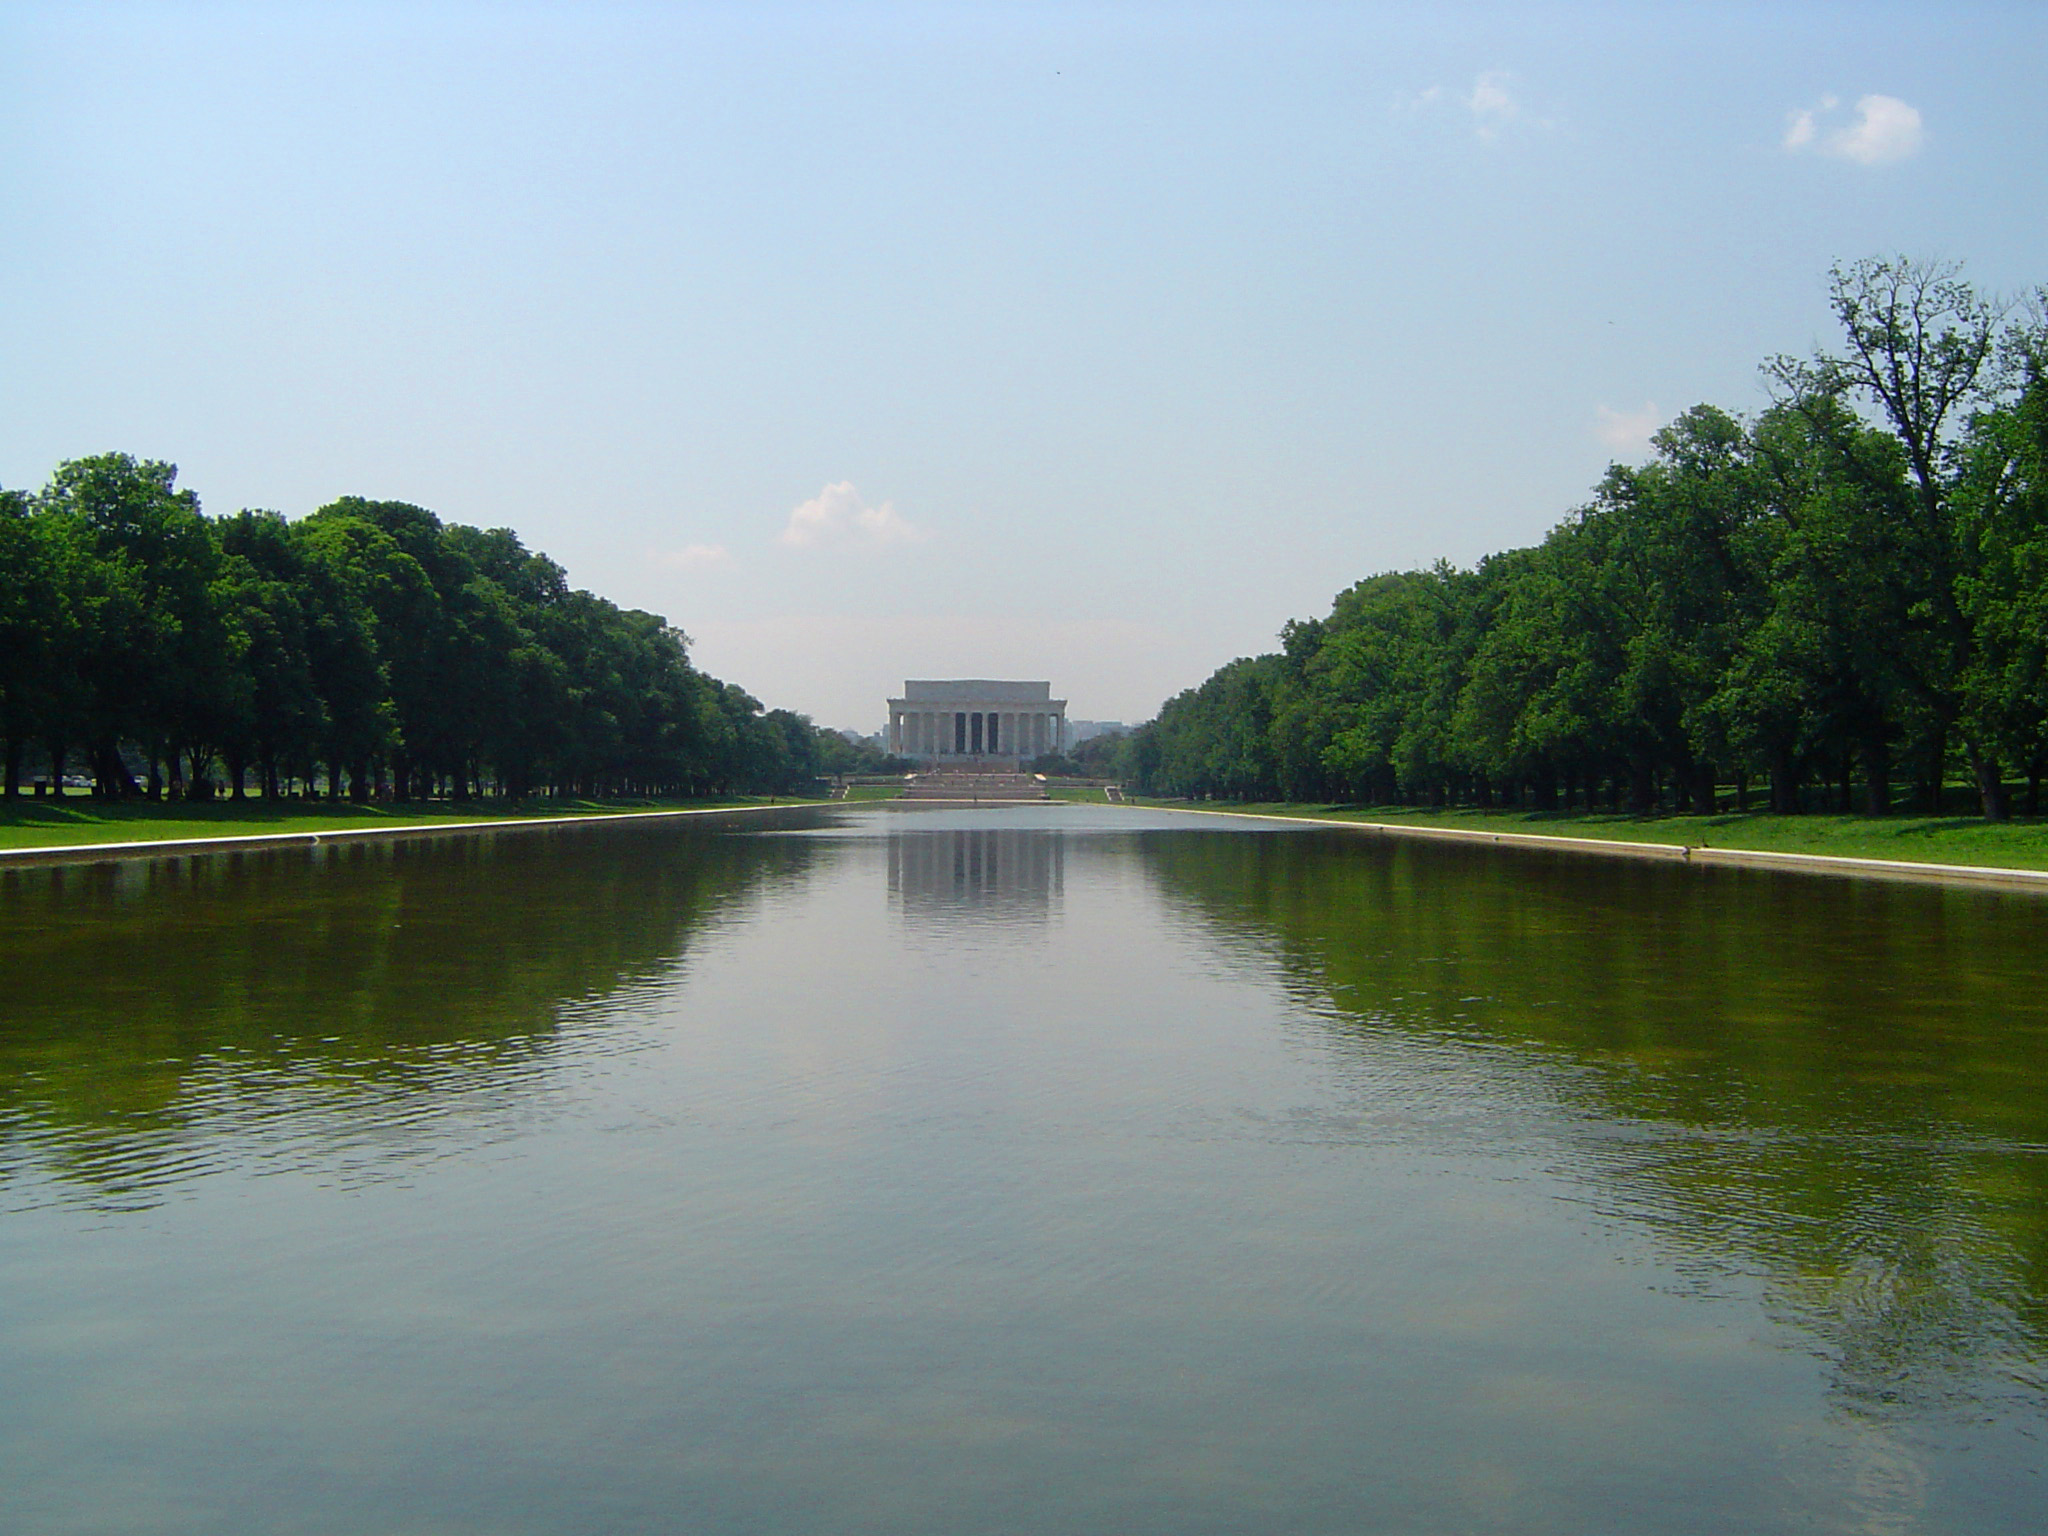 Reflecting Pool in Front Lincoln Memorial Building Surrounded by Tall Green Trees, Located in Washington